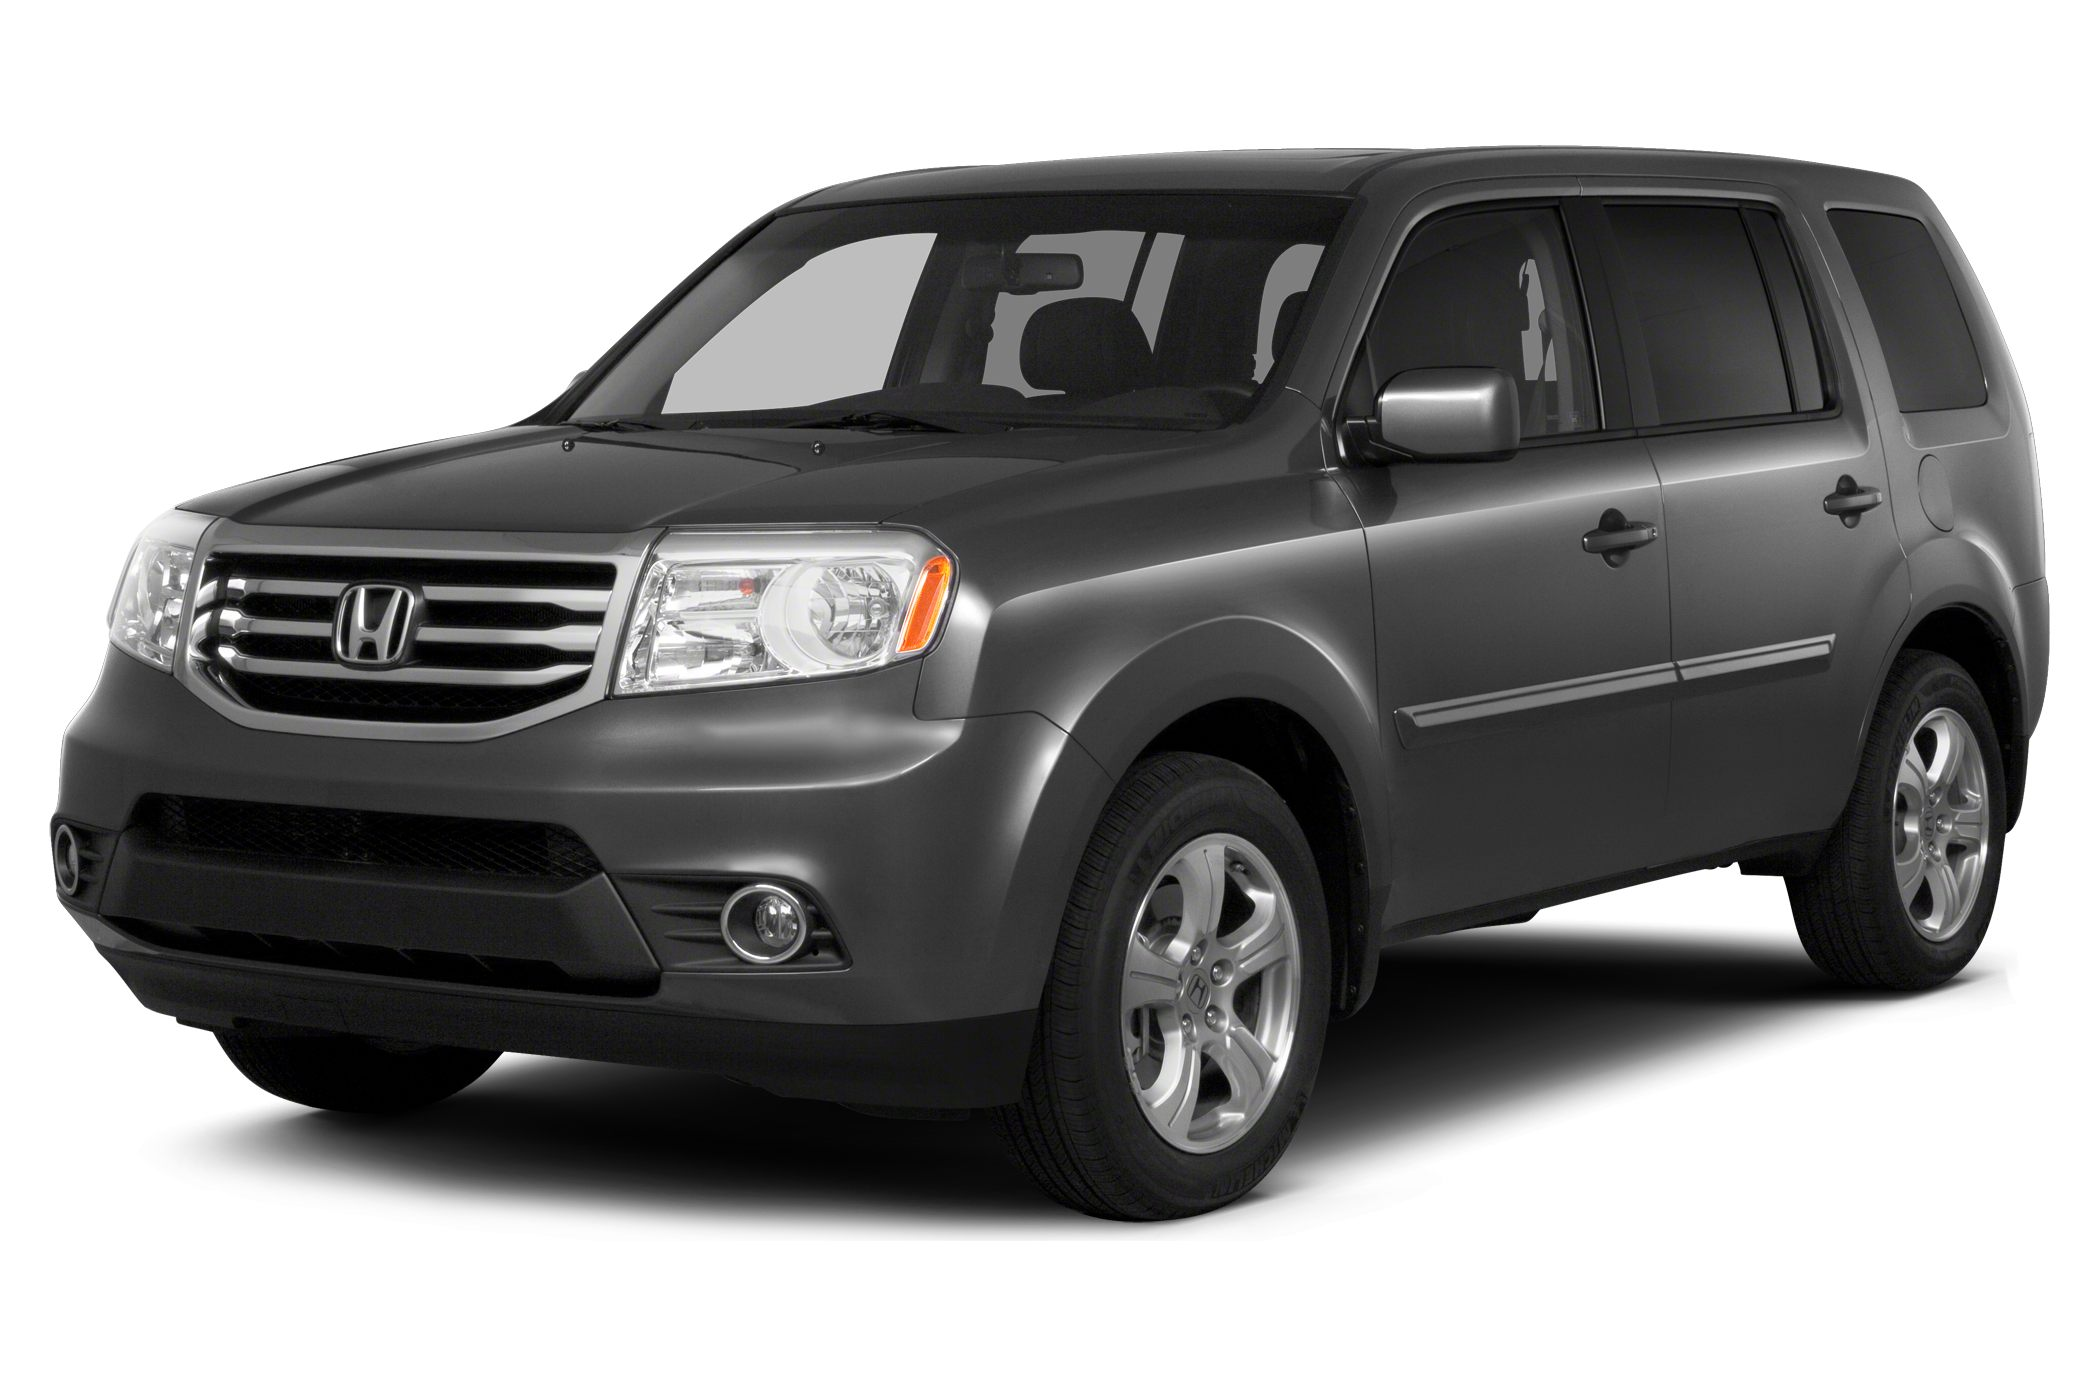 2015 Honda Pilot EX-L SUV for sale in Riviera Beach for $38,250 with 4 miles.